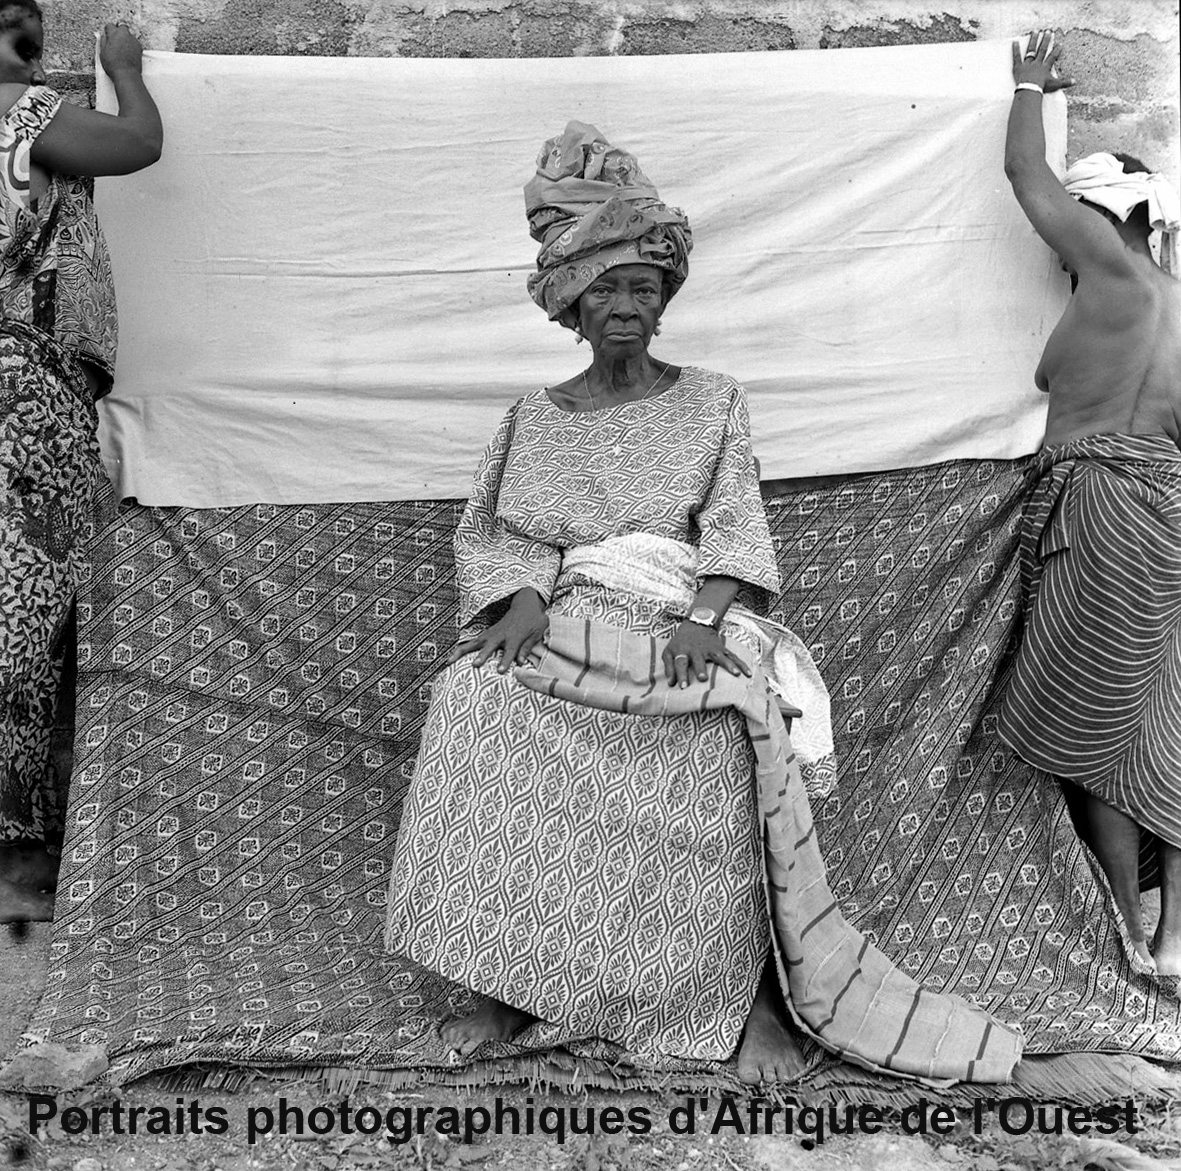 Portraits photographiques d&#39;Afrique de l&#39;Ouest